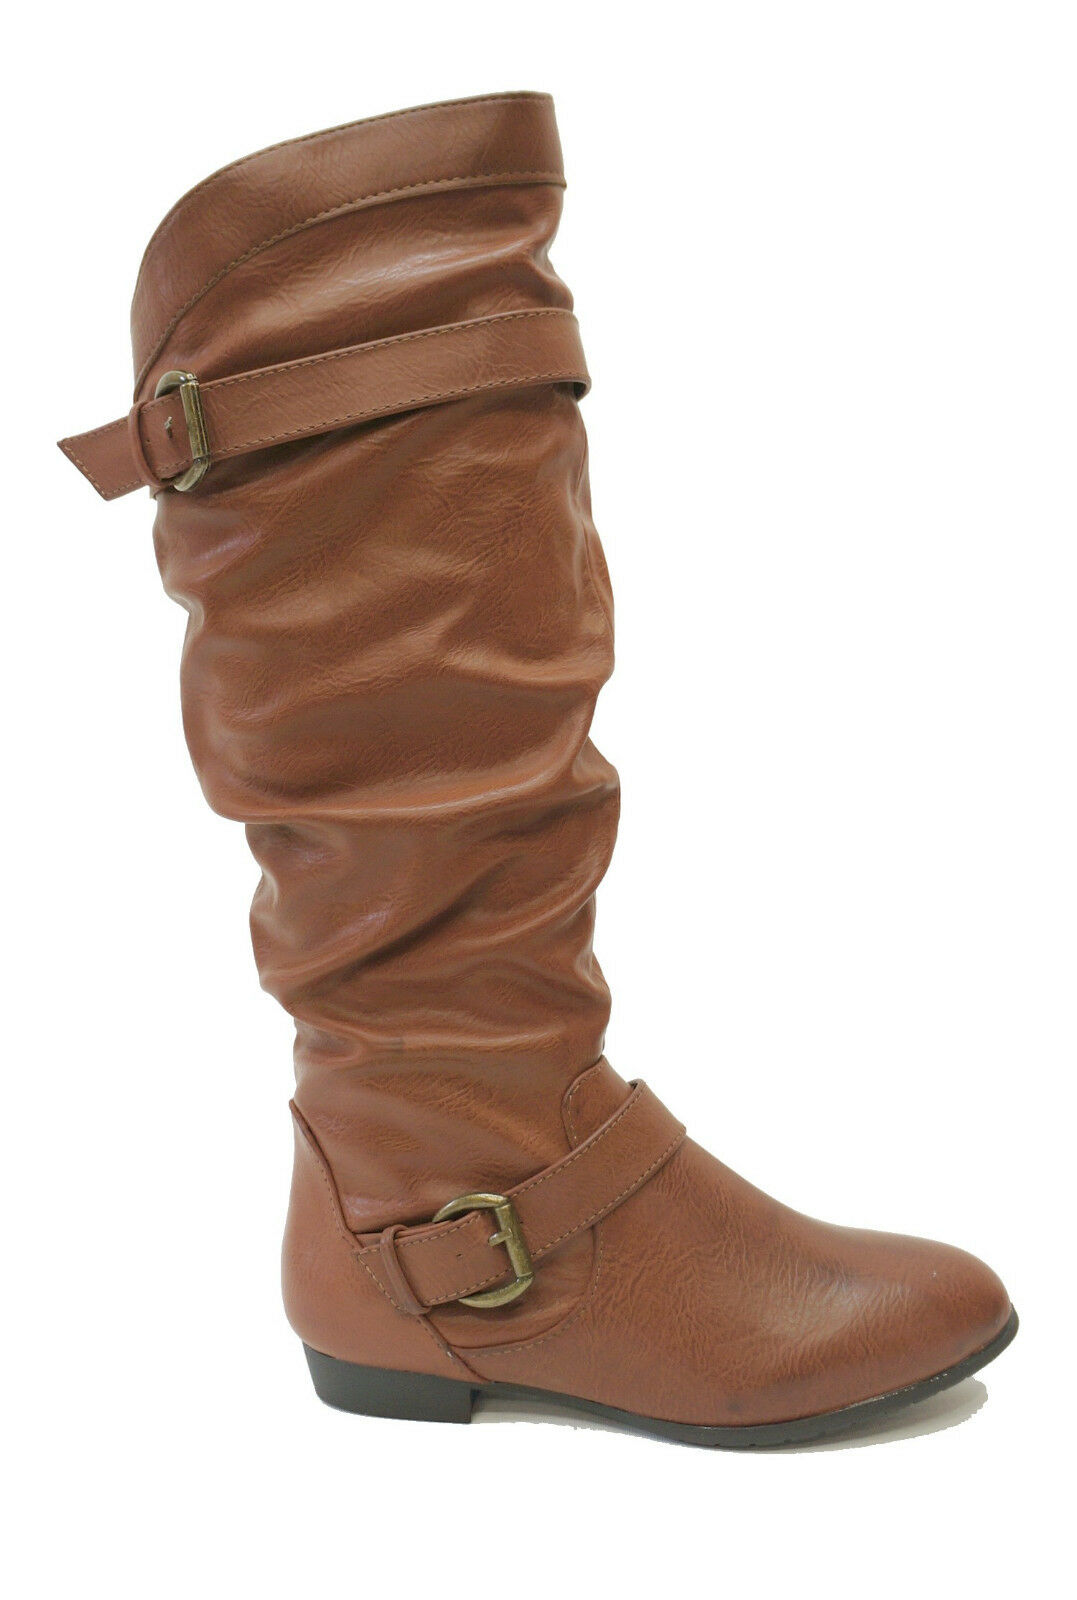 New! Rampage Brown Knee High Flat Tall Boots BASKING Women's Shoes US 6